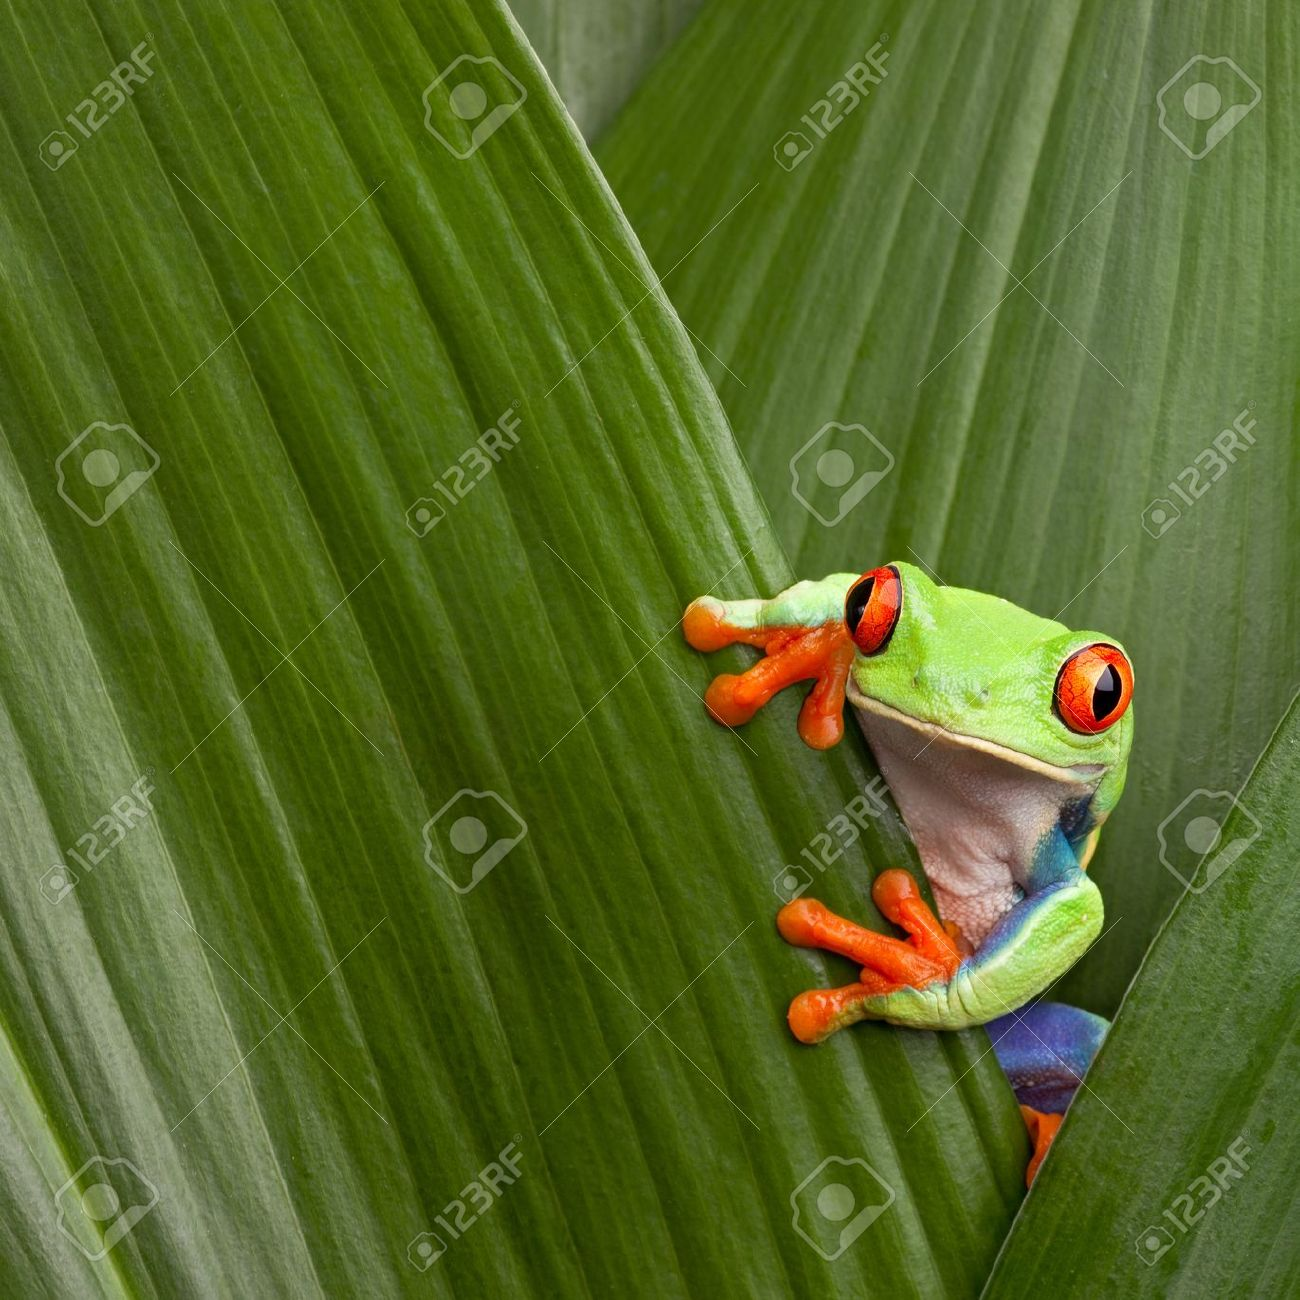 Life In The Rainforest By Arlette Renteria On Emaze